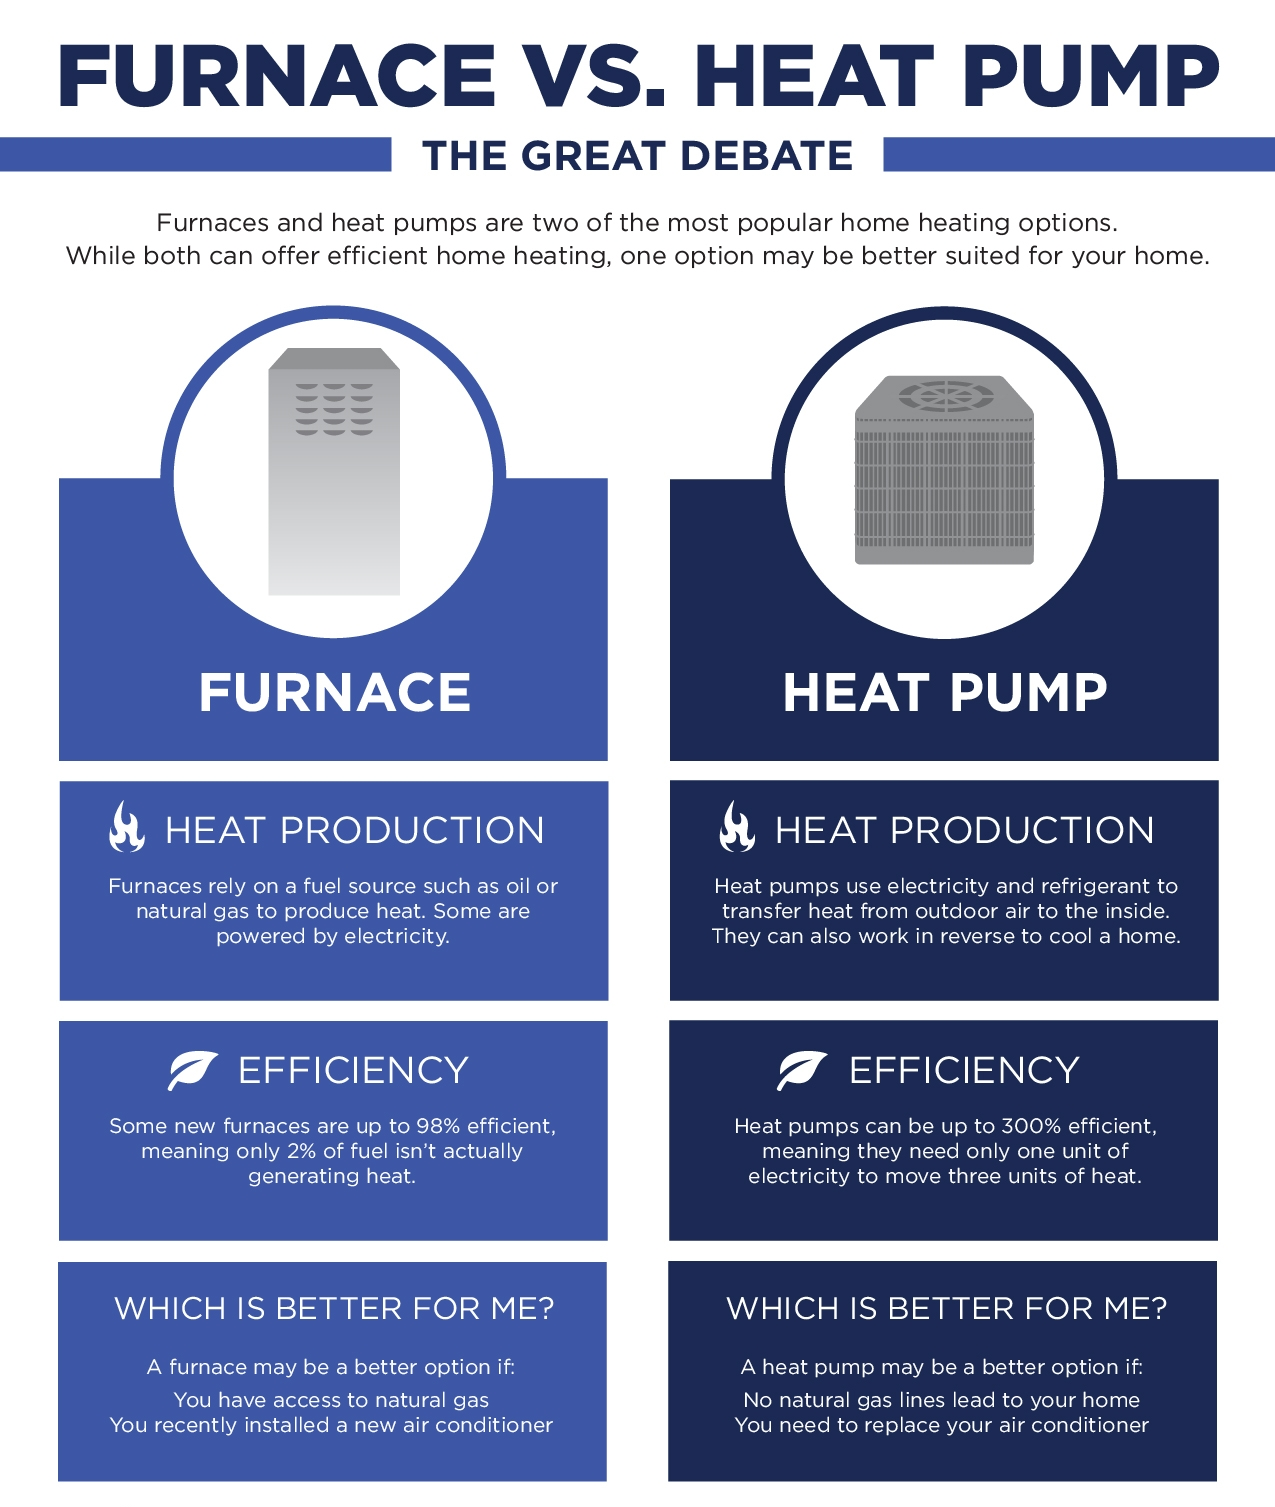 heat pump vs furnace, home heating options, russells hvac, va, nc